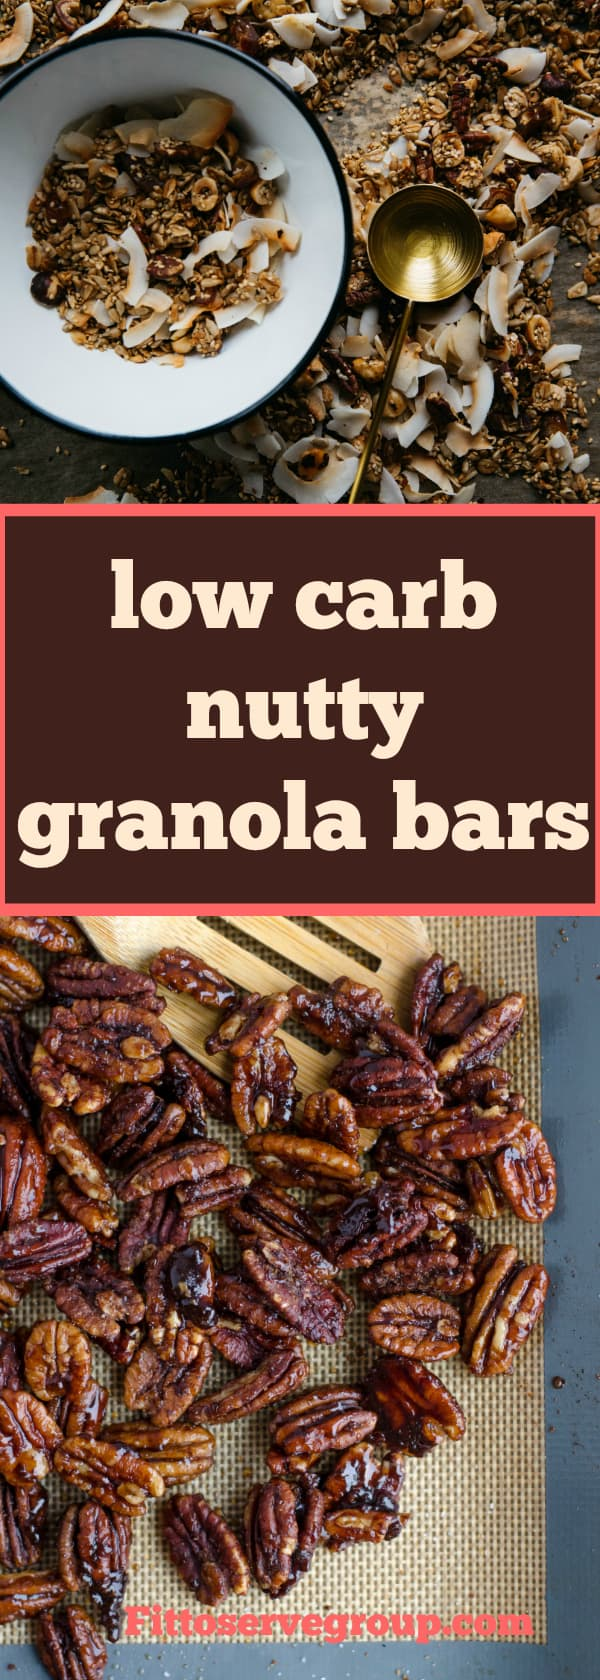 ow carb nutty granola bars